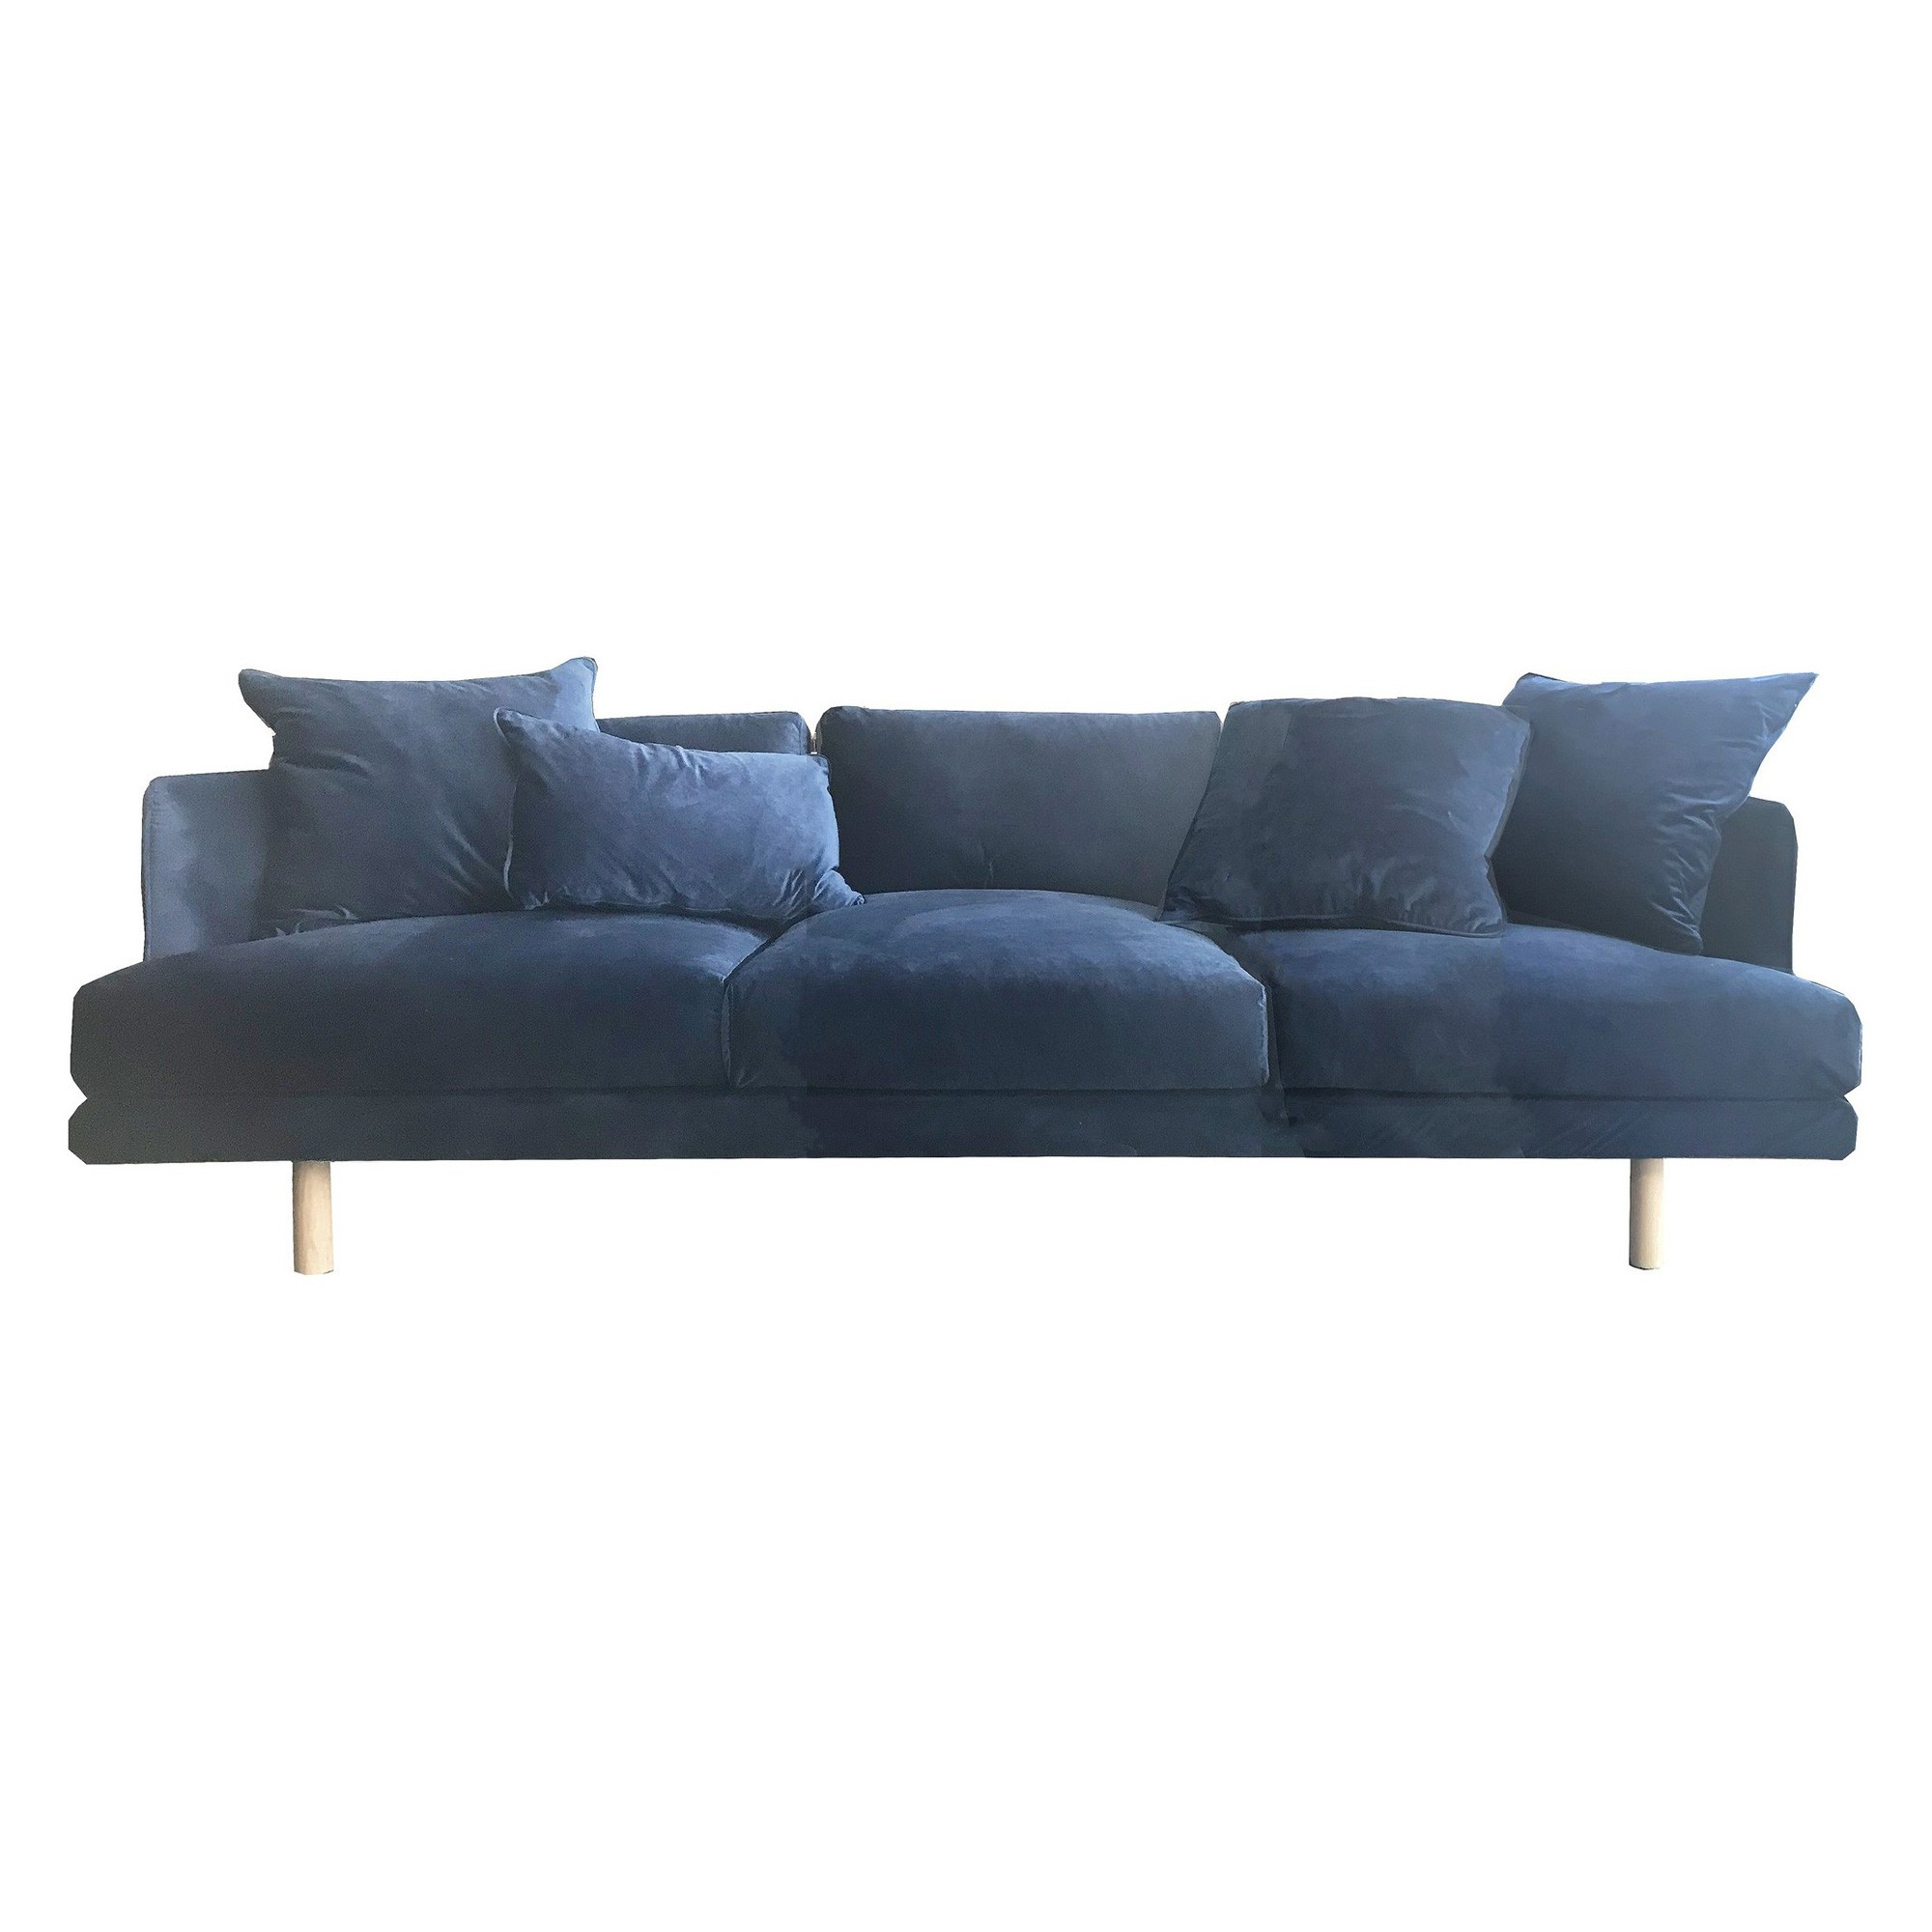 Cody Velvet Fabric Sofa, 4 Seater, Husk